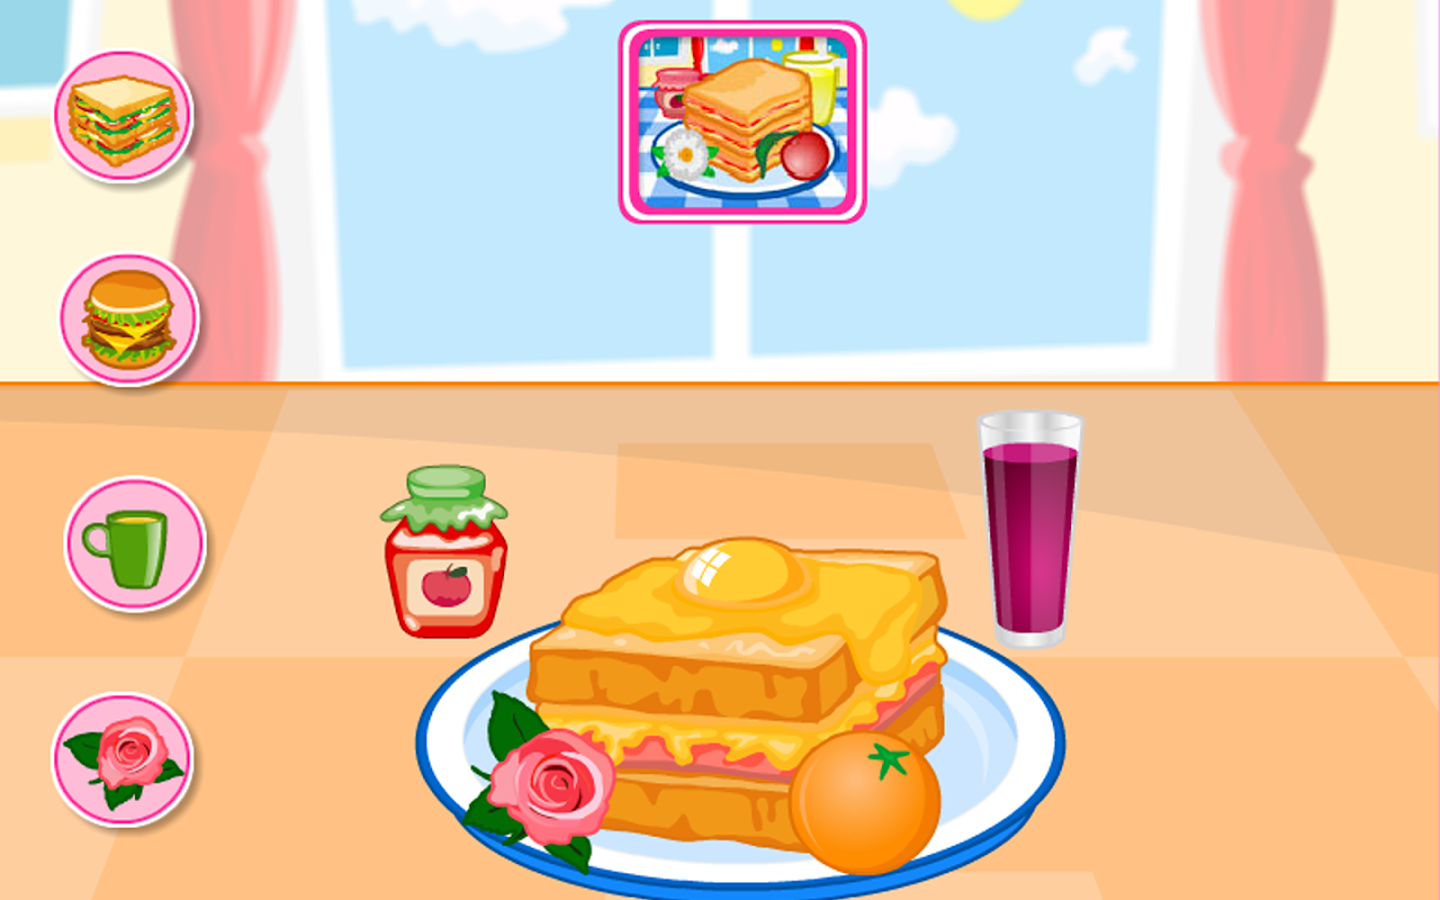 Breakfast decoration game android apps on google play for 143dressup games decoration